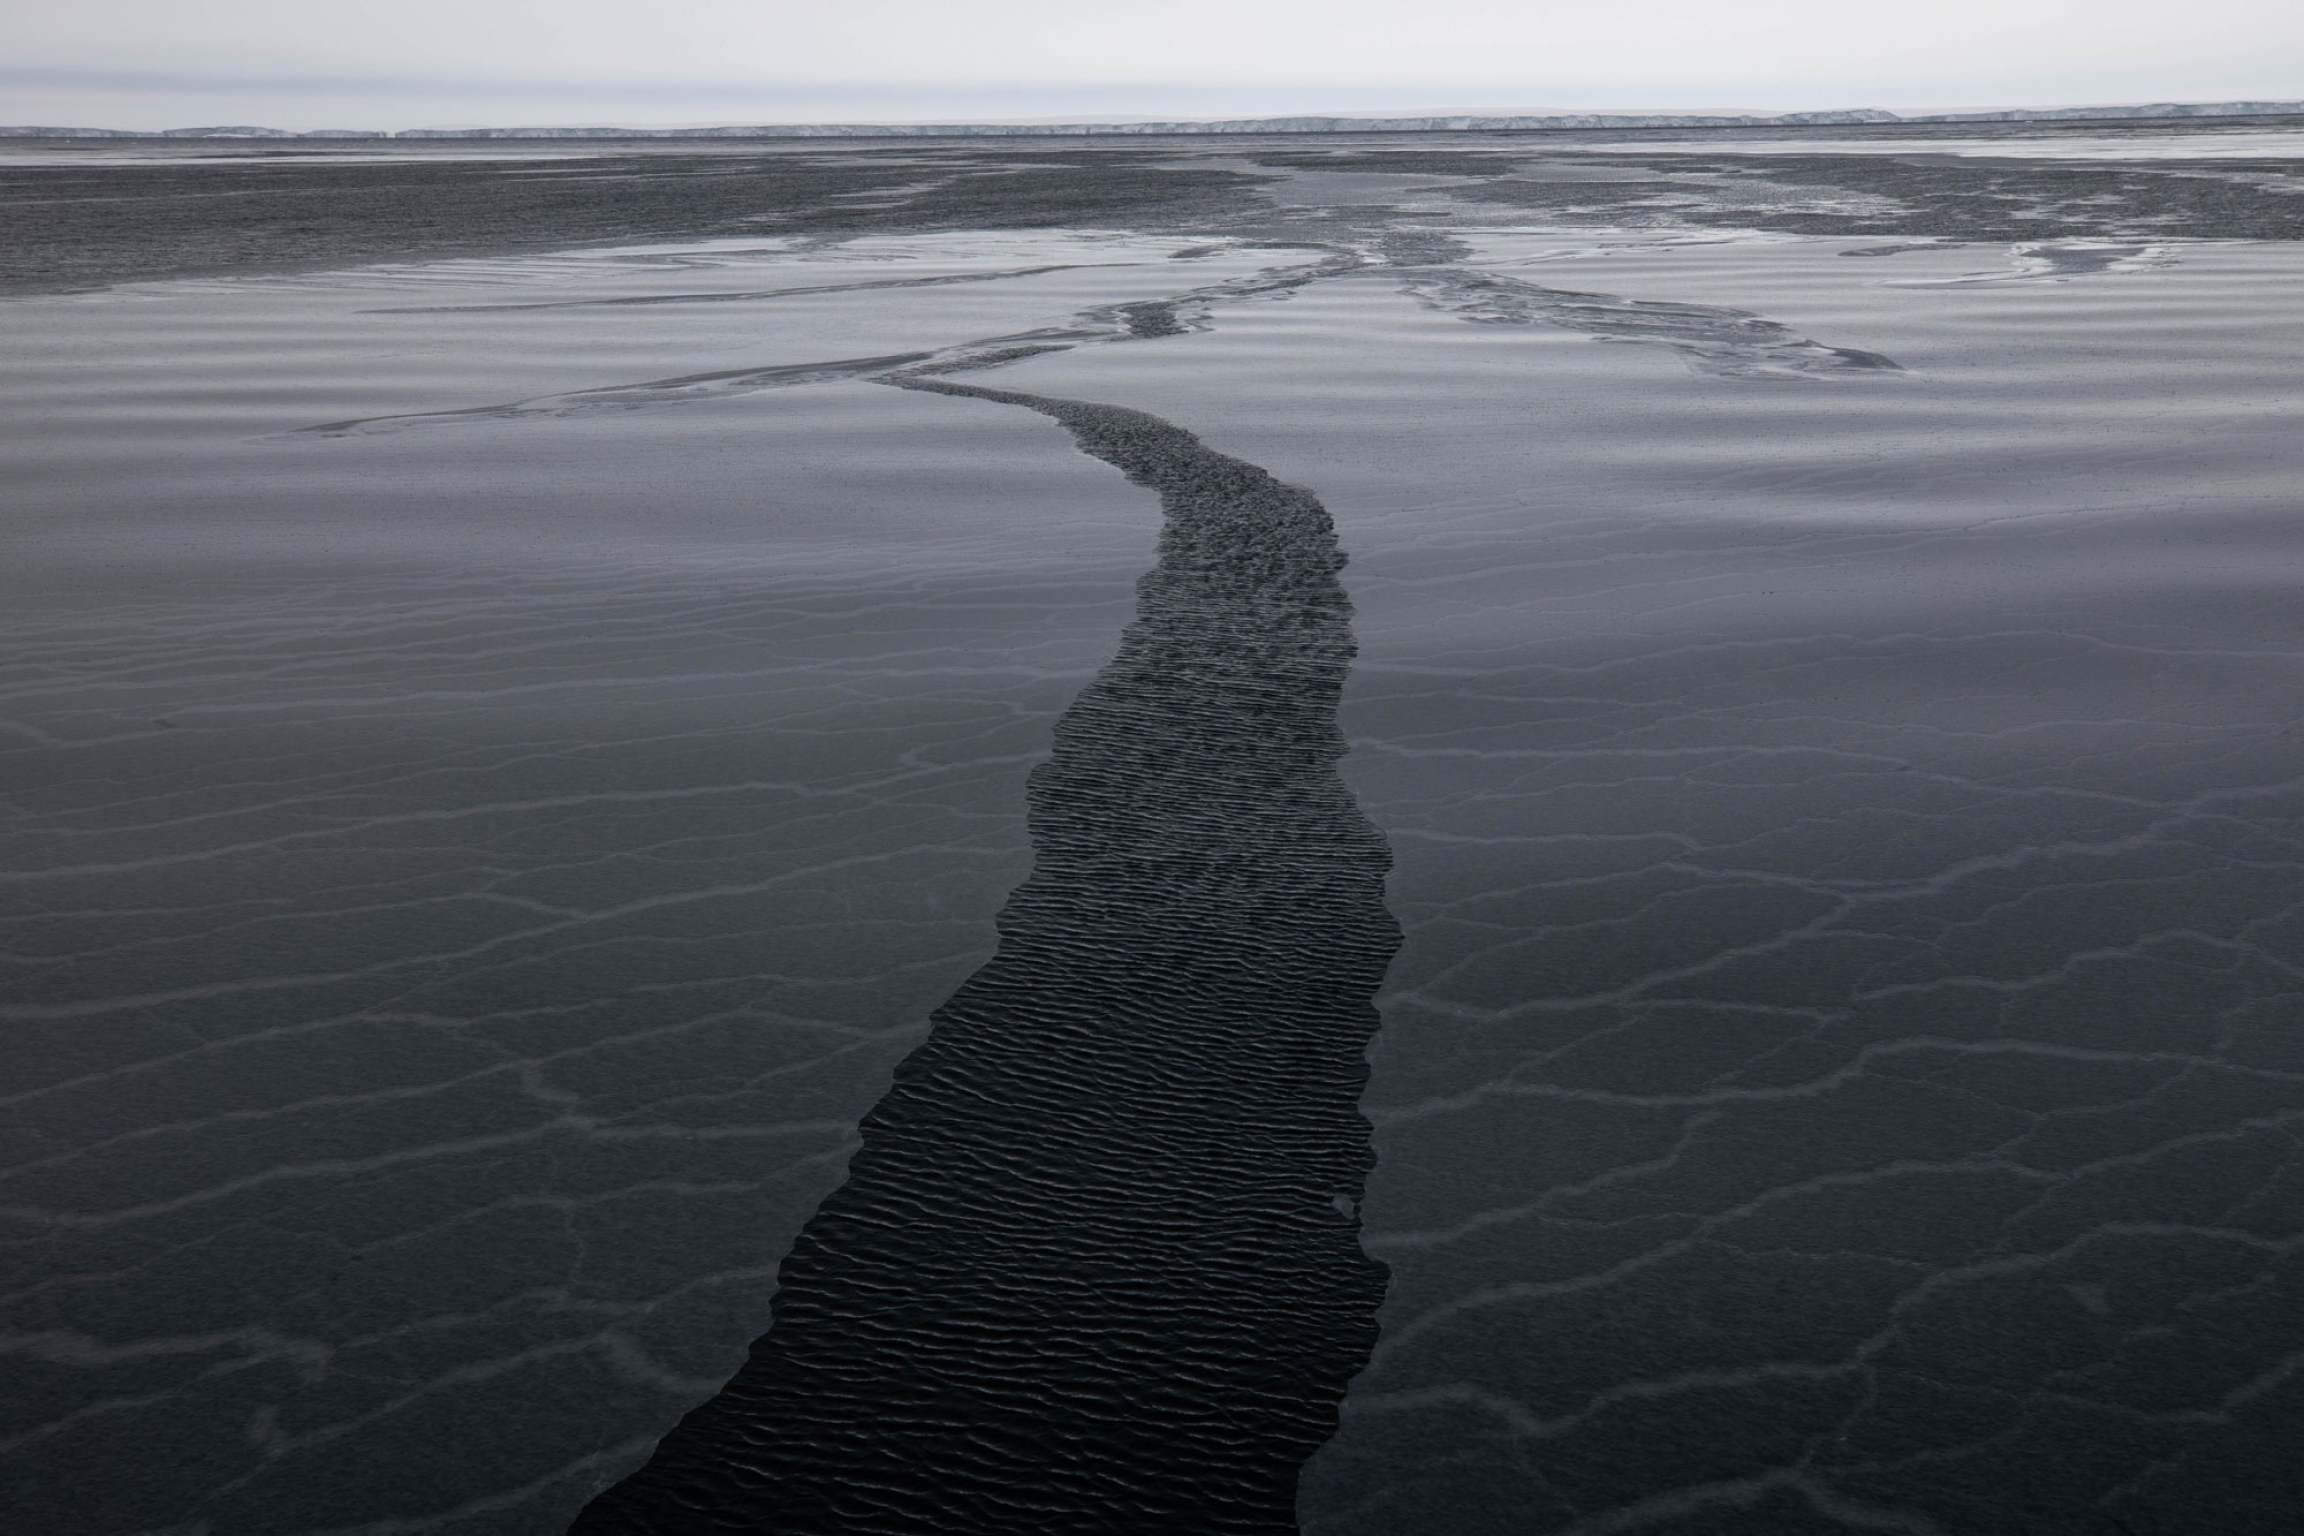 A narrow break in new ice is shown in the middle of the photo on a gray day in the Amundsen Sea.